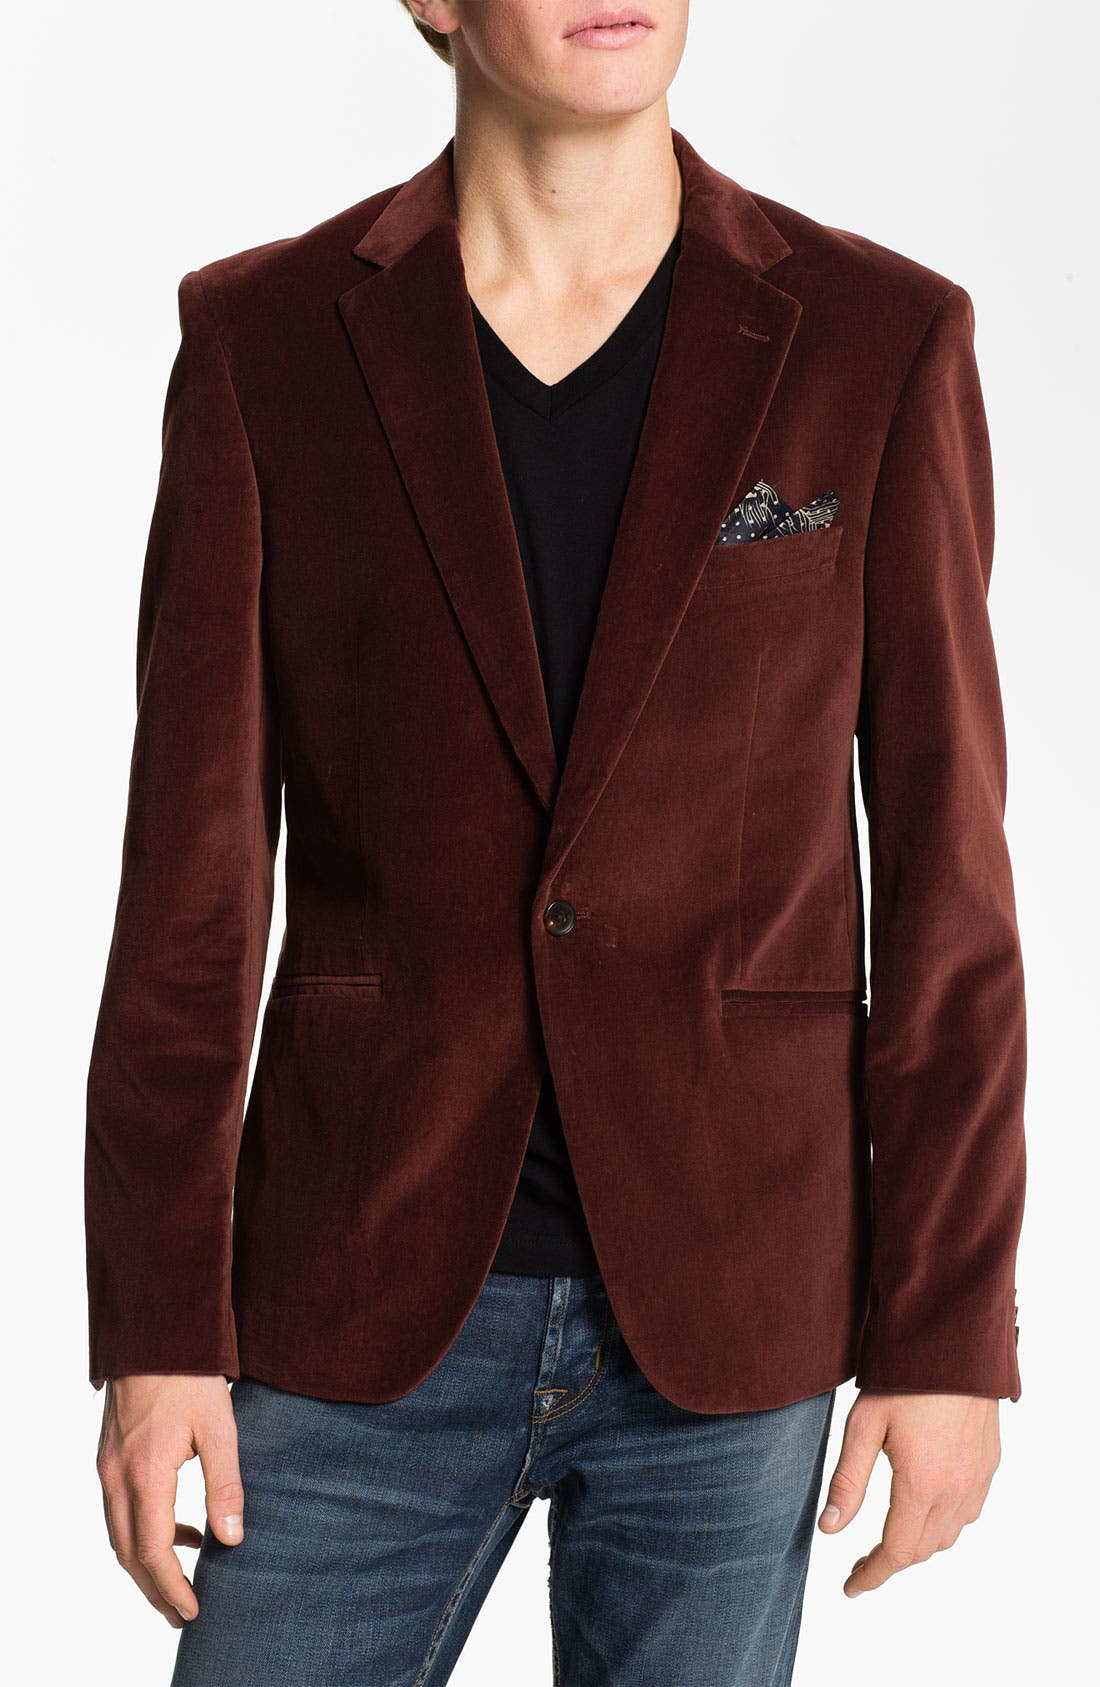 Main Image - Scotch & Soda Trim Fit Velvet Blazer